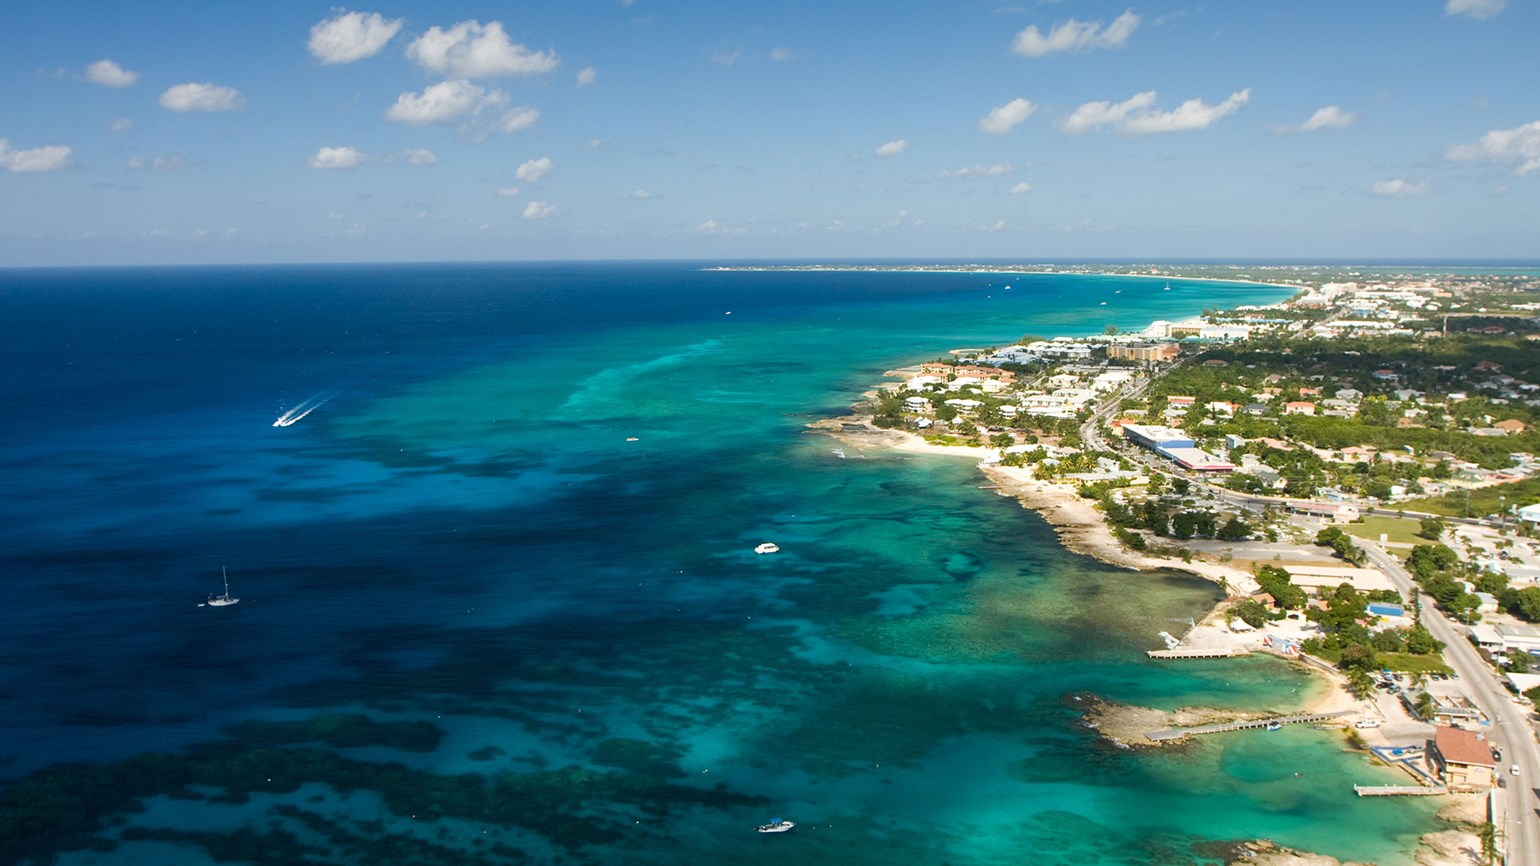 Cayman Islands may dial back on cruise visits once borders reopen